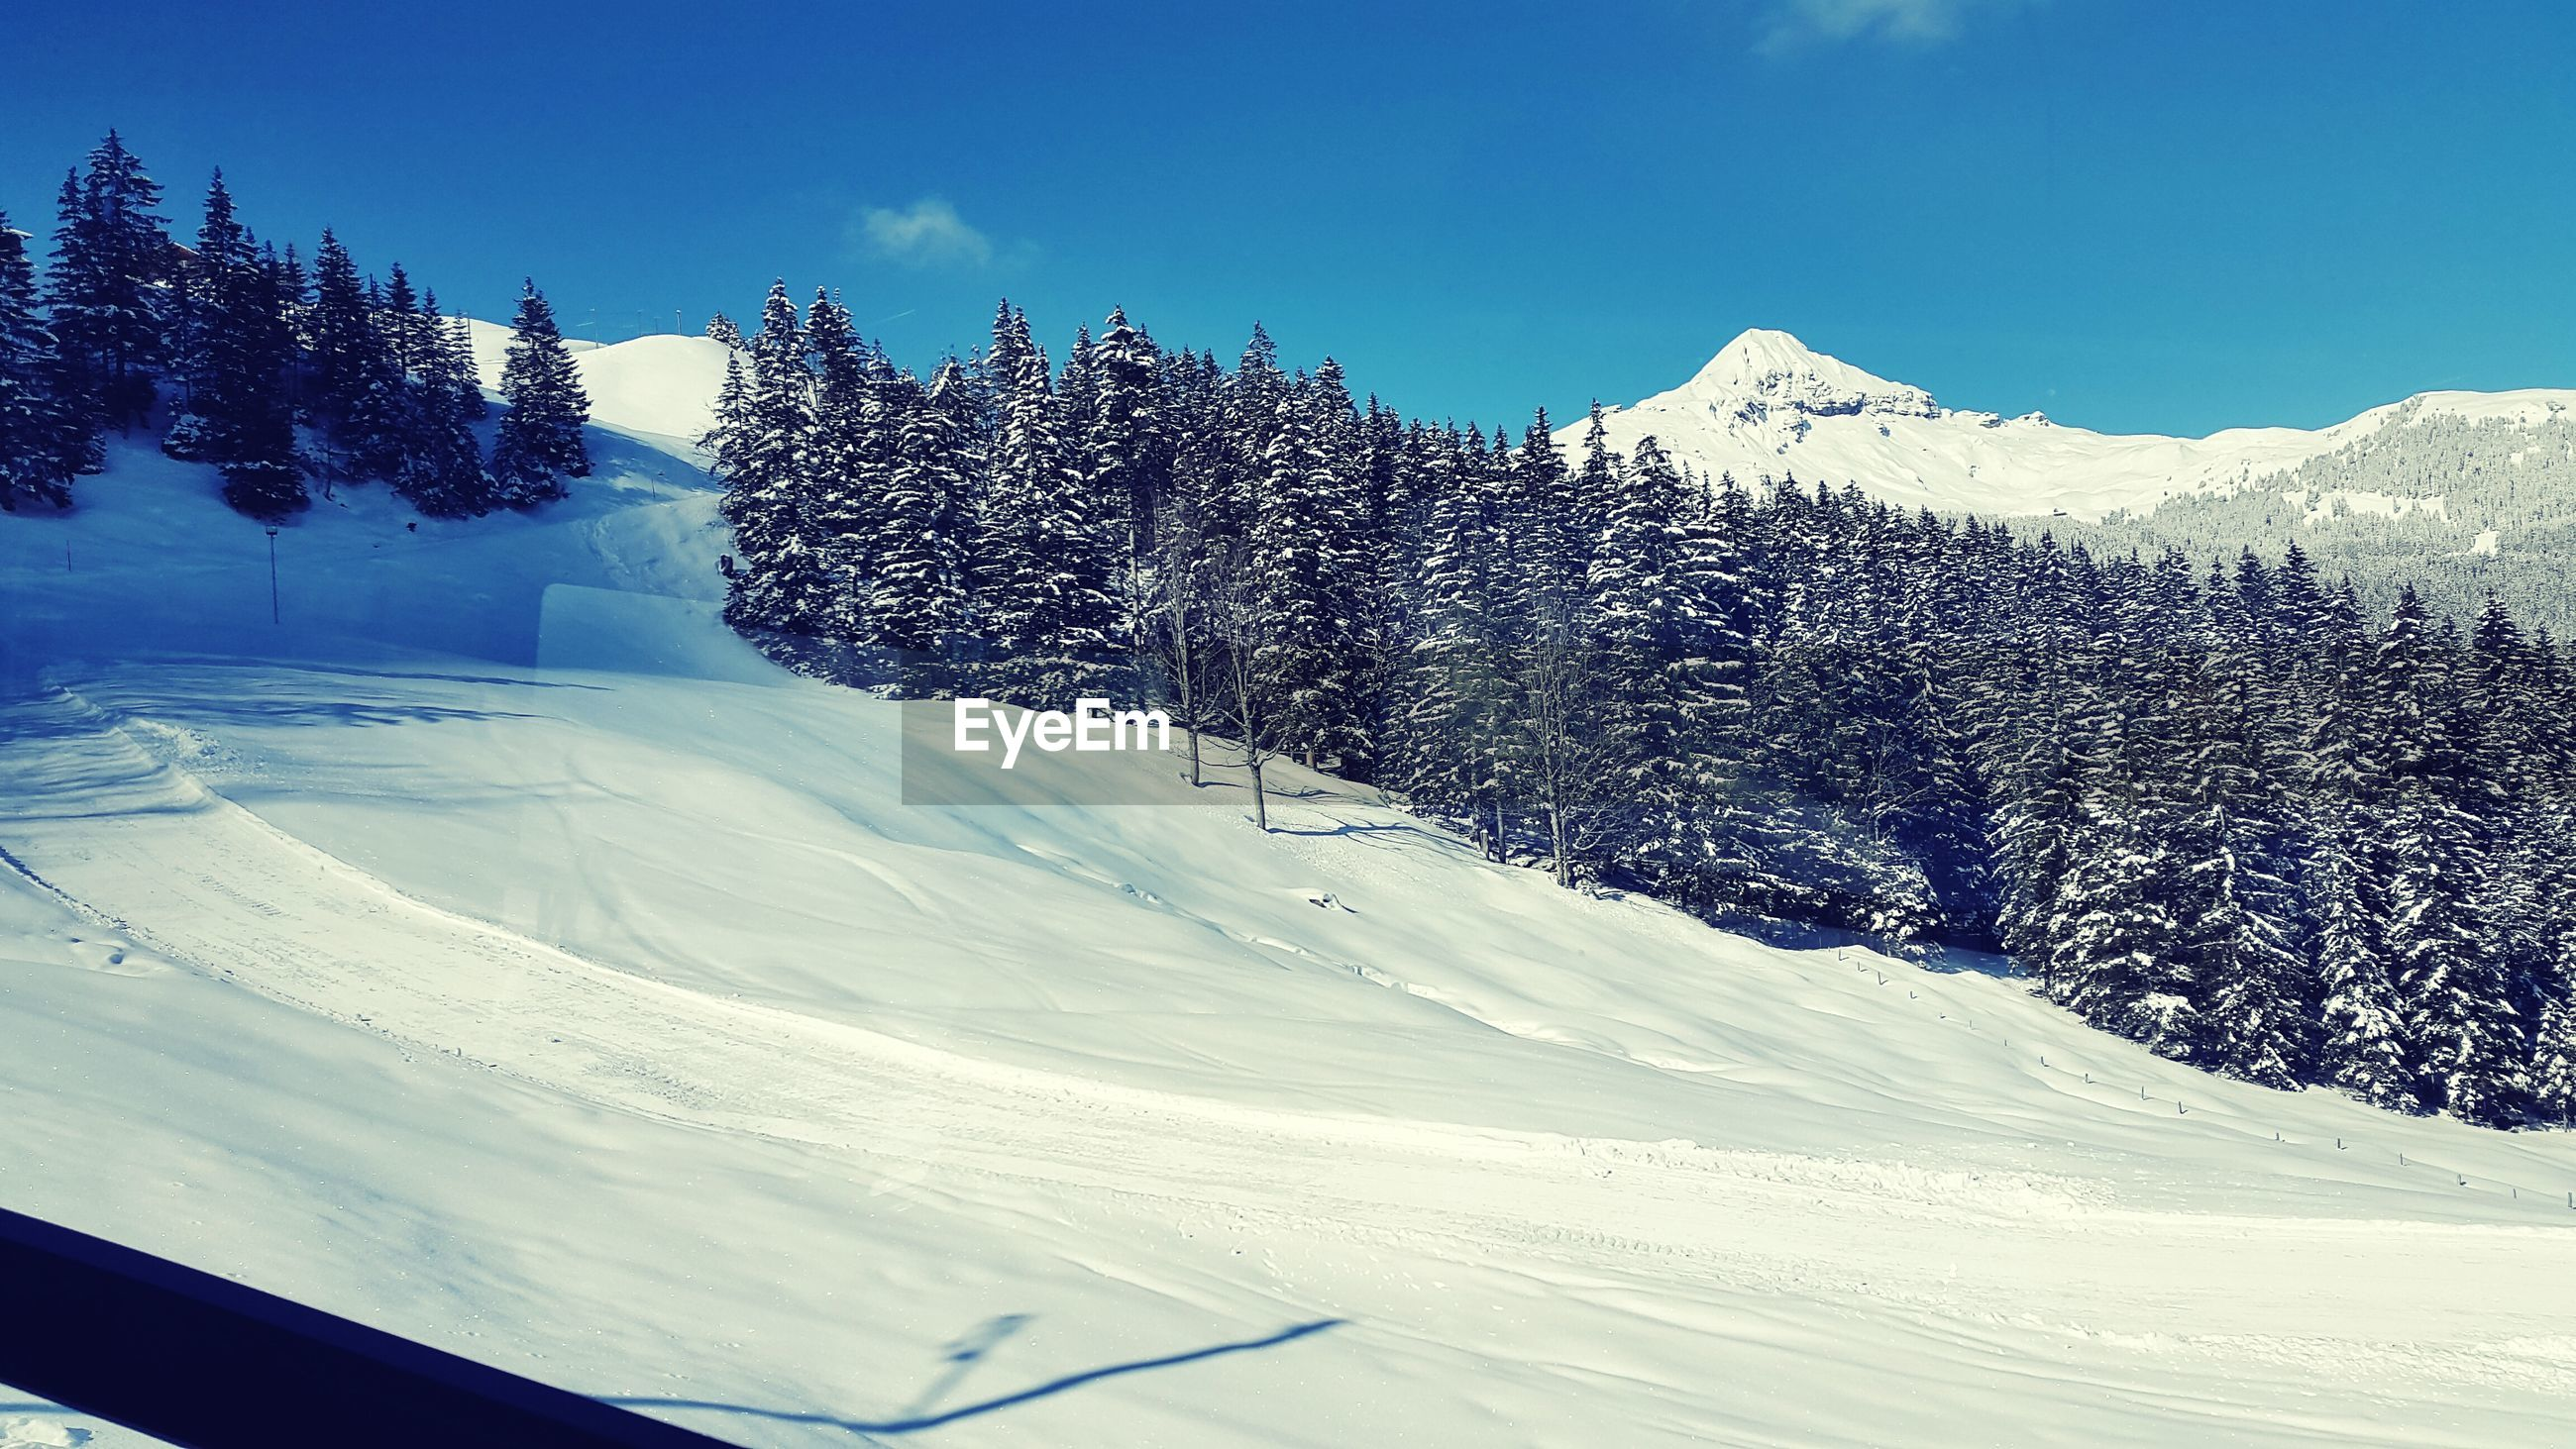 snow, winter, cold temperature, season, weather, covering, landscape, white color, tranquil scene, snowcapped mountain, nature, mountain, field, tranquility, beauty in nature, covered, snow covered, frozen, scenics, clear sky